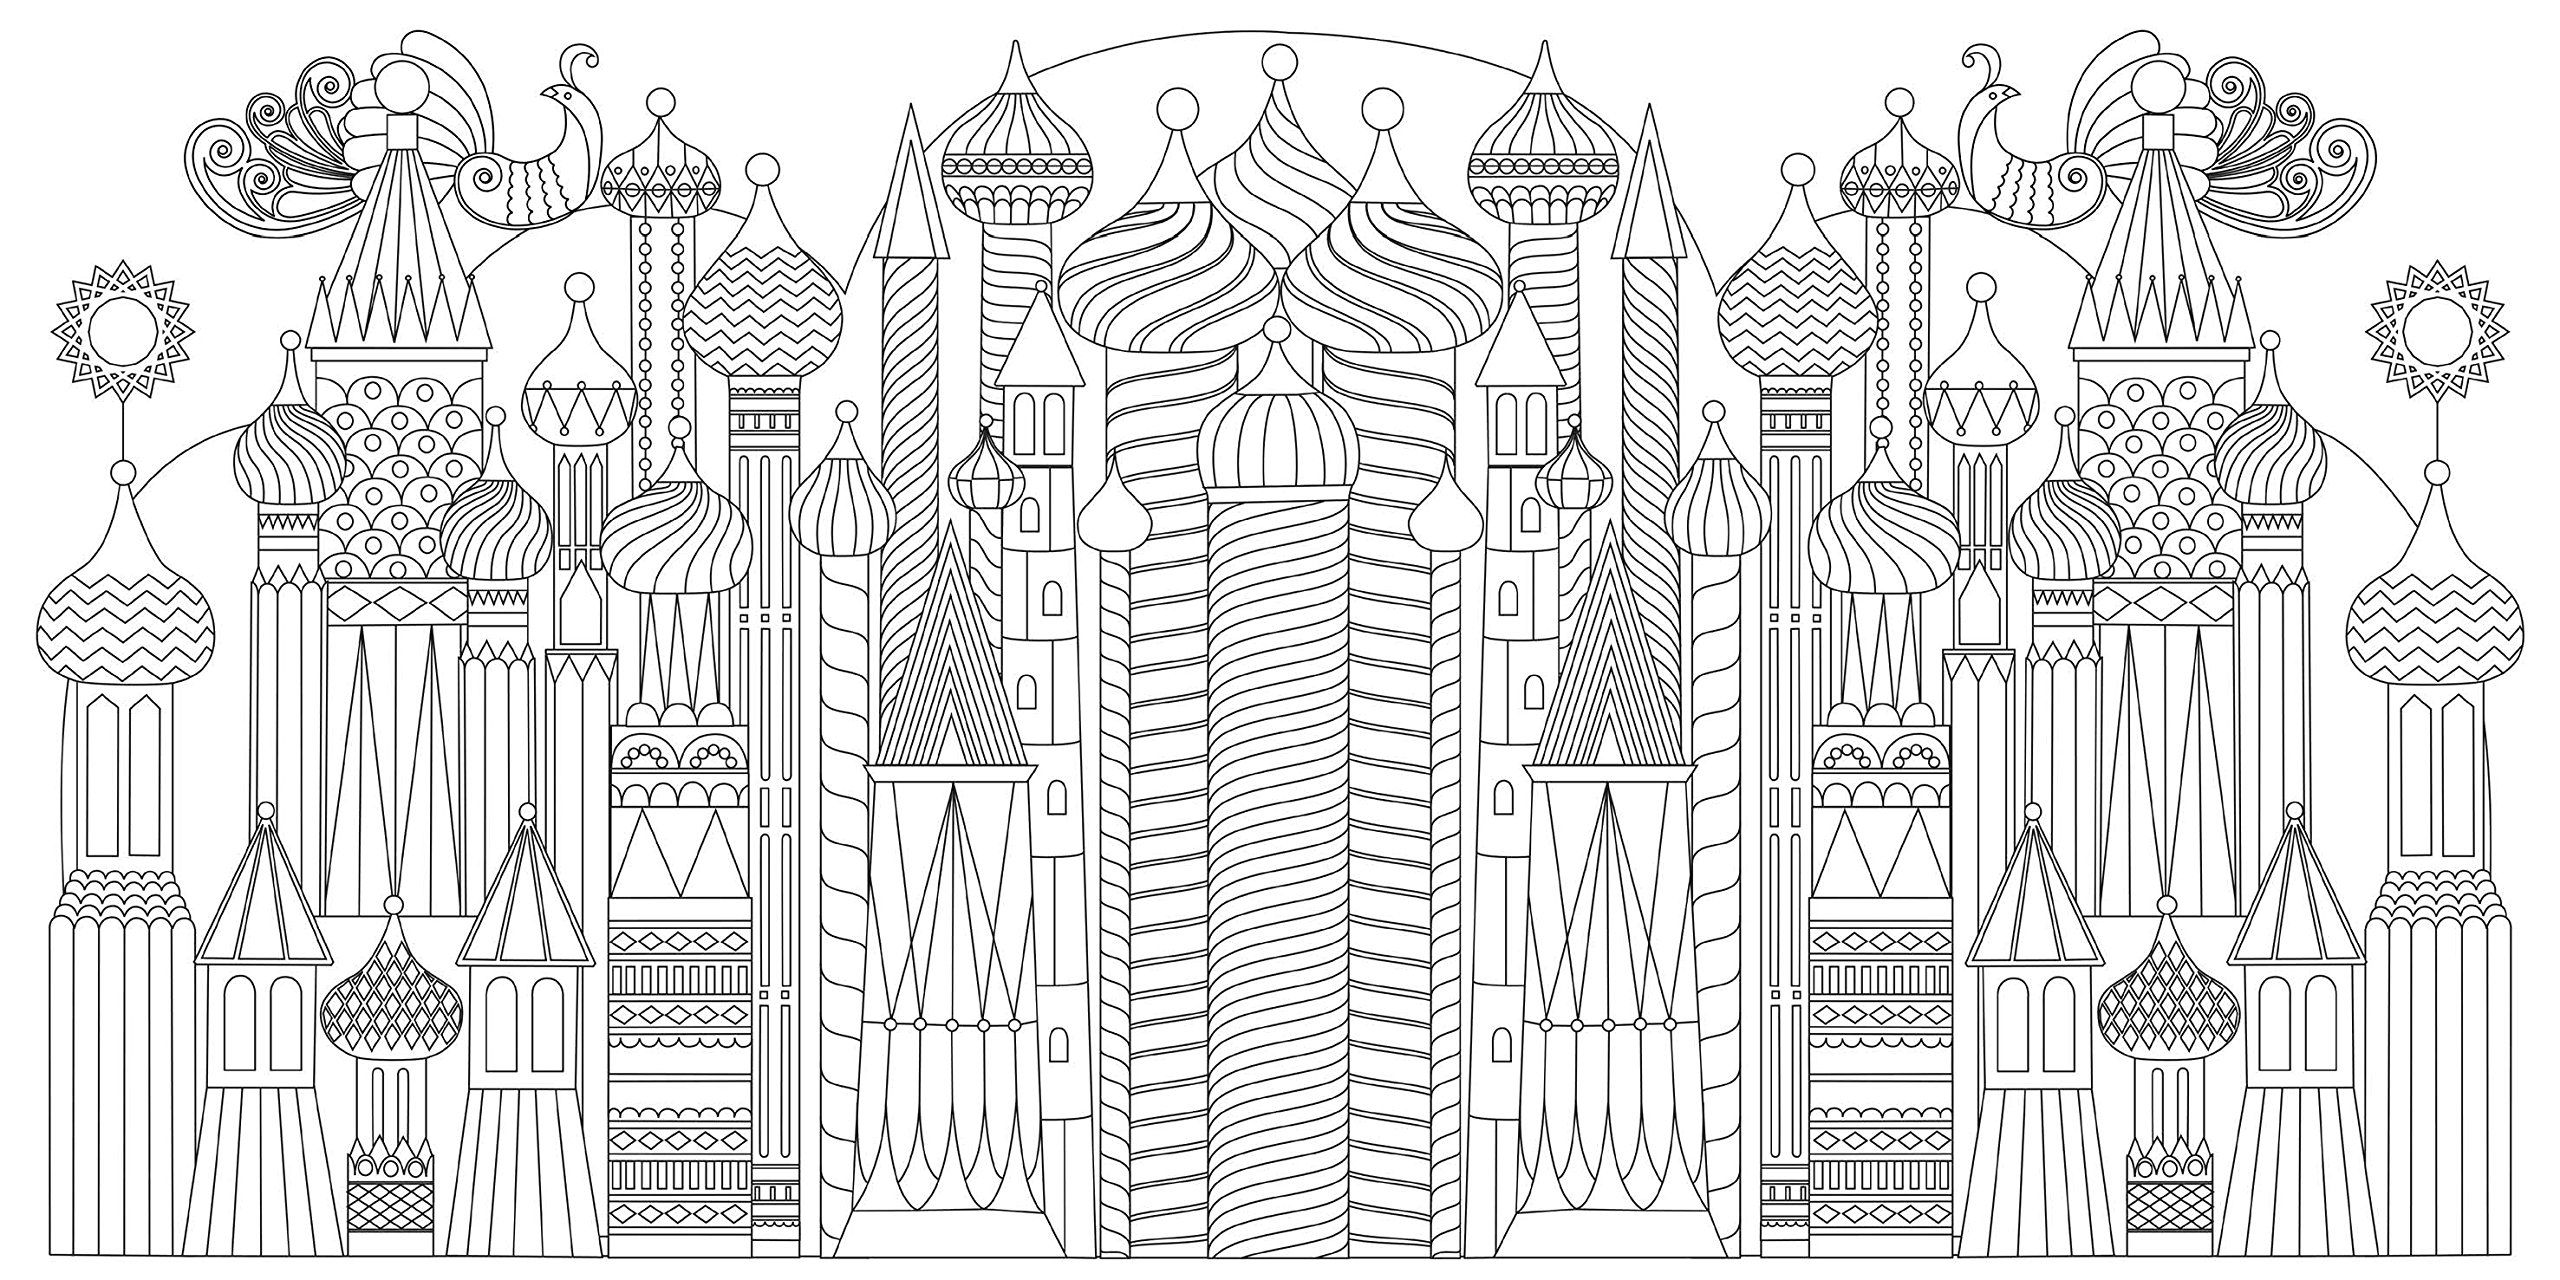 Splendid Cities Color Your Way To Calm Rosie Goodwin Alice Chadwick 9780316265812 Amazon Com Book Coloring Book Art Designs Coloring Books Coloring Books